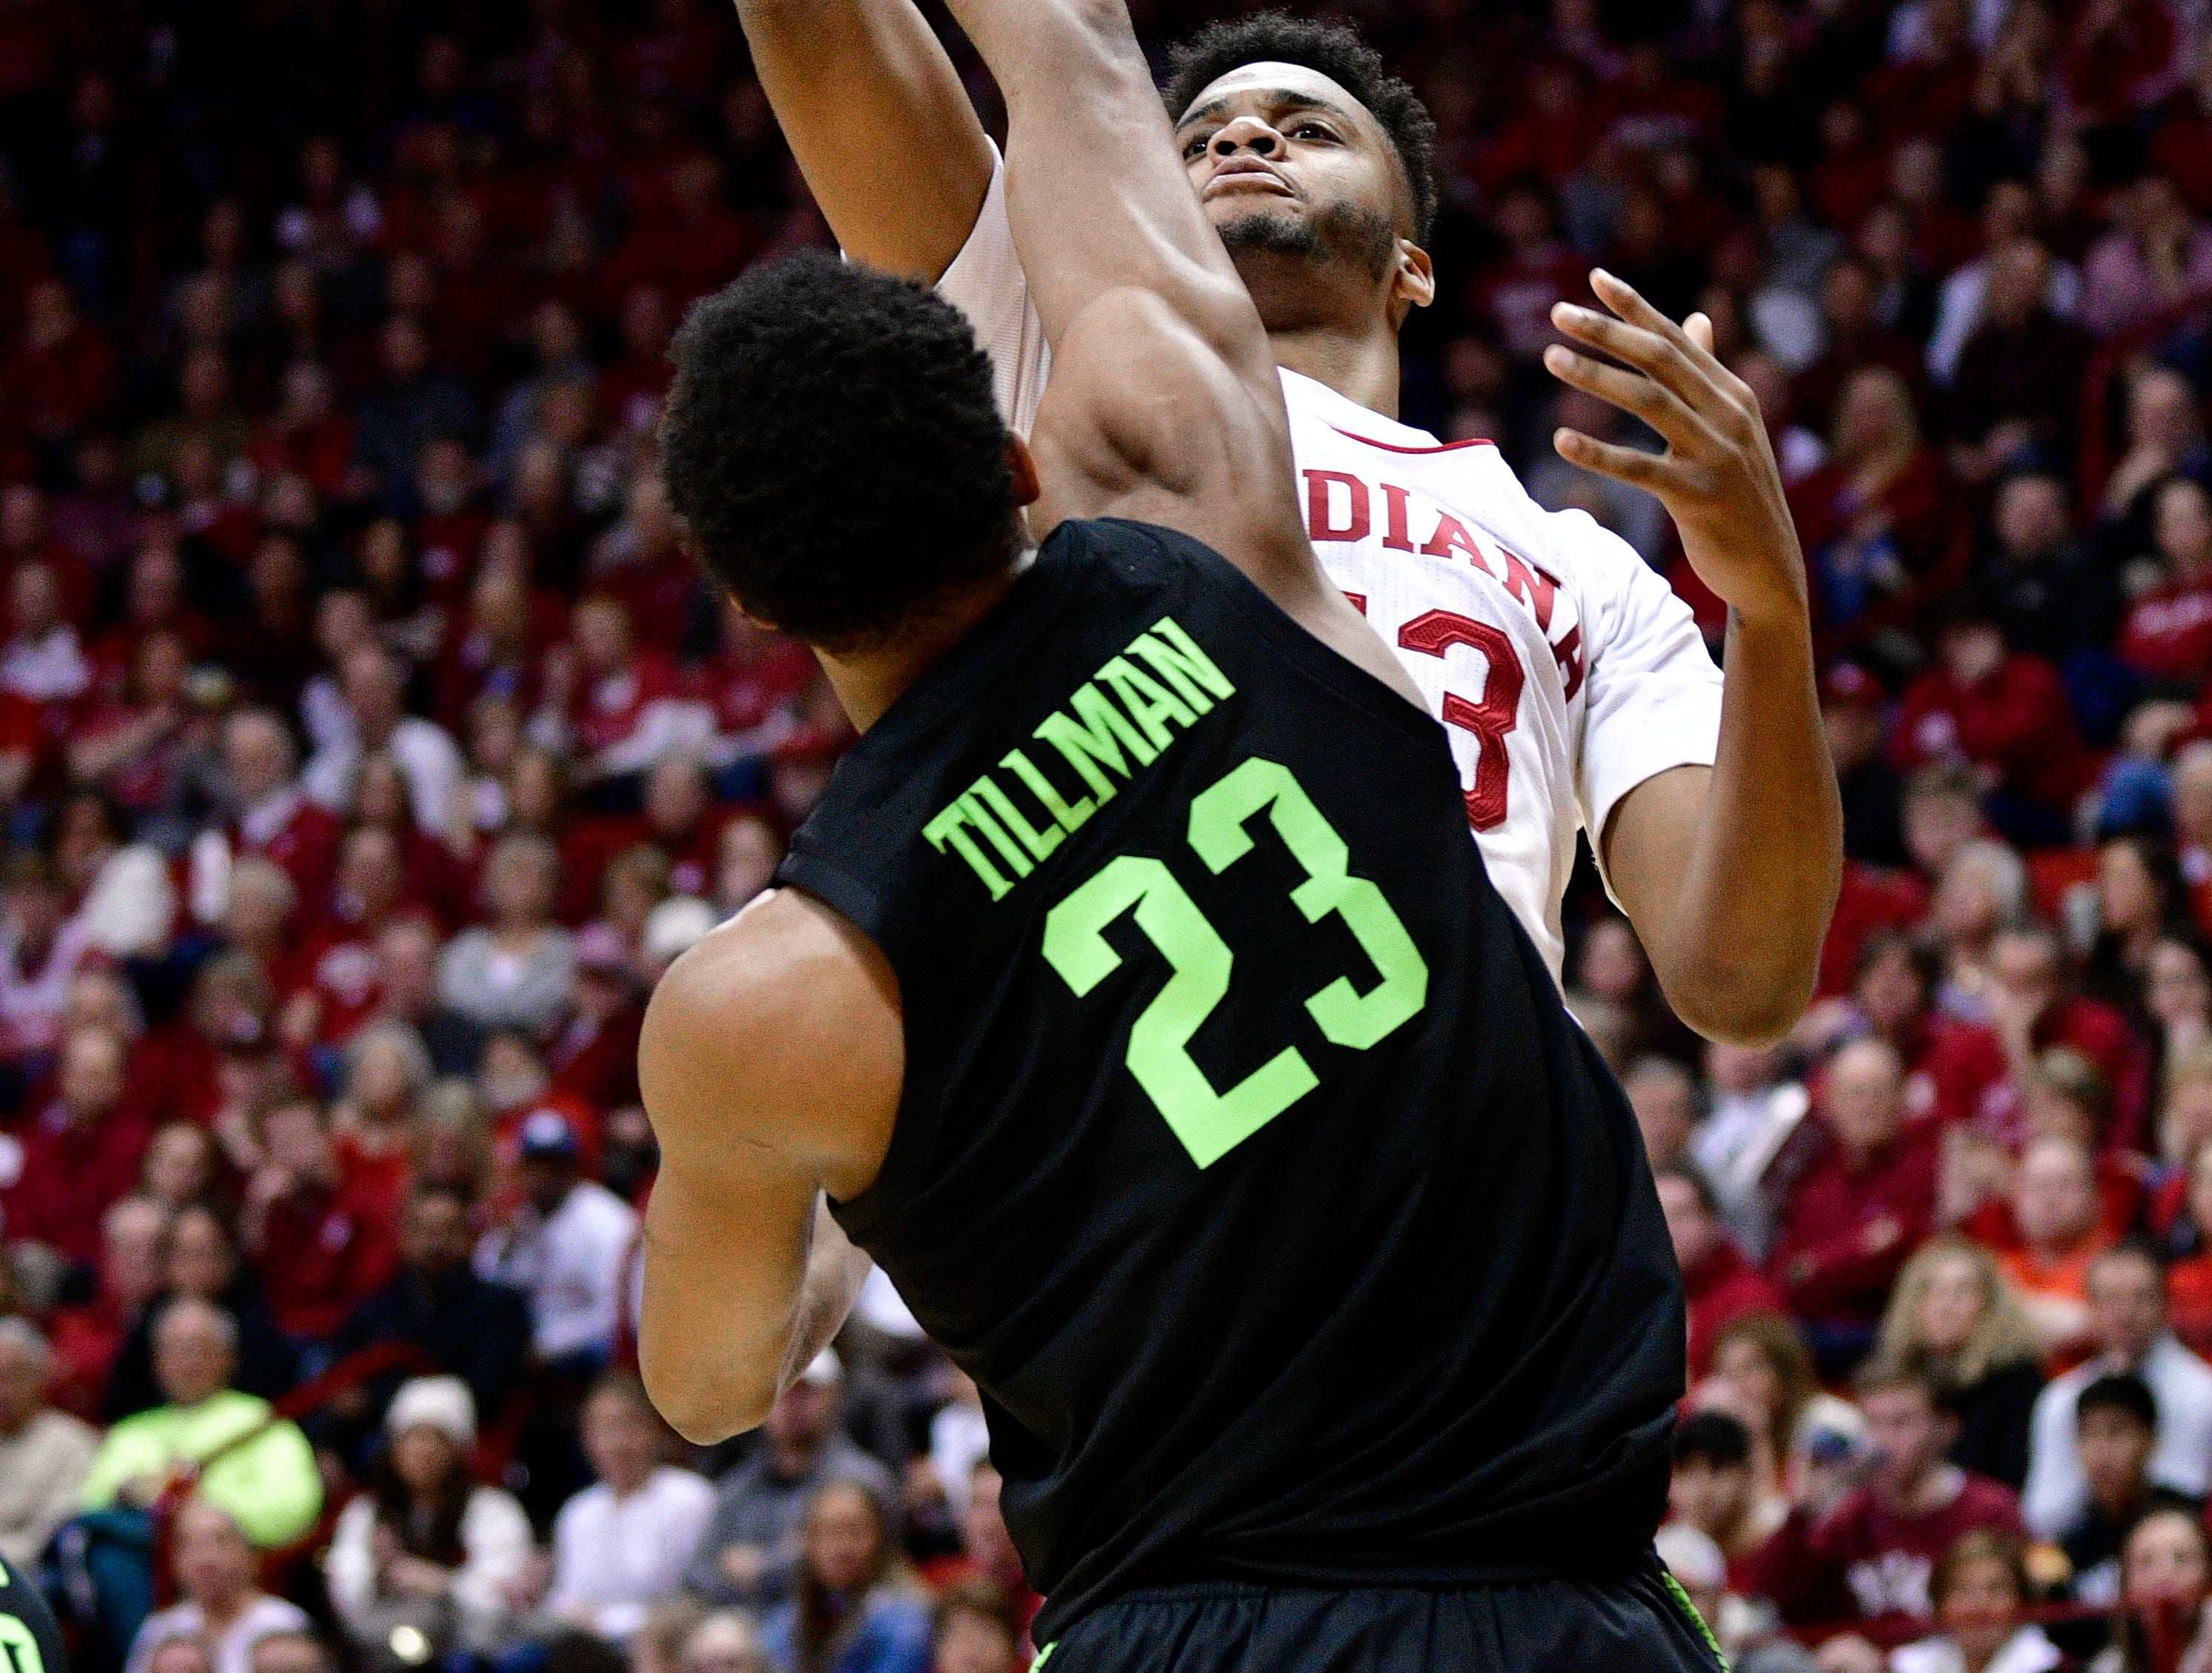 Mar 2, 2019; Bloomington, IN, USA; Indiana Hoosiers forward Juwan Morgan (13) takes a shot over Michigan State Spartans forward Xavier Tillman (23) during the first half of the game at Assembly Hall. Mandatory Credit: Marc Lebryk-USA TODAY Sports